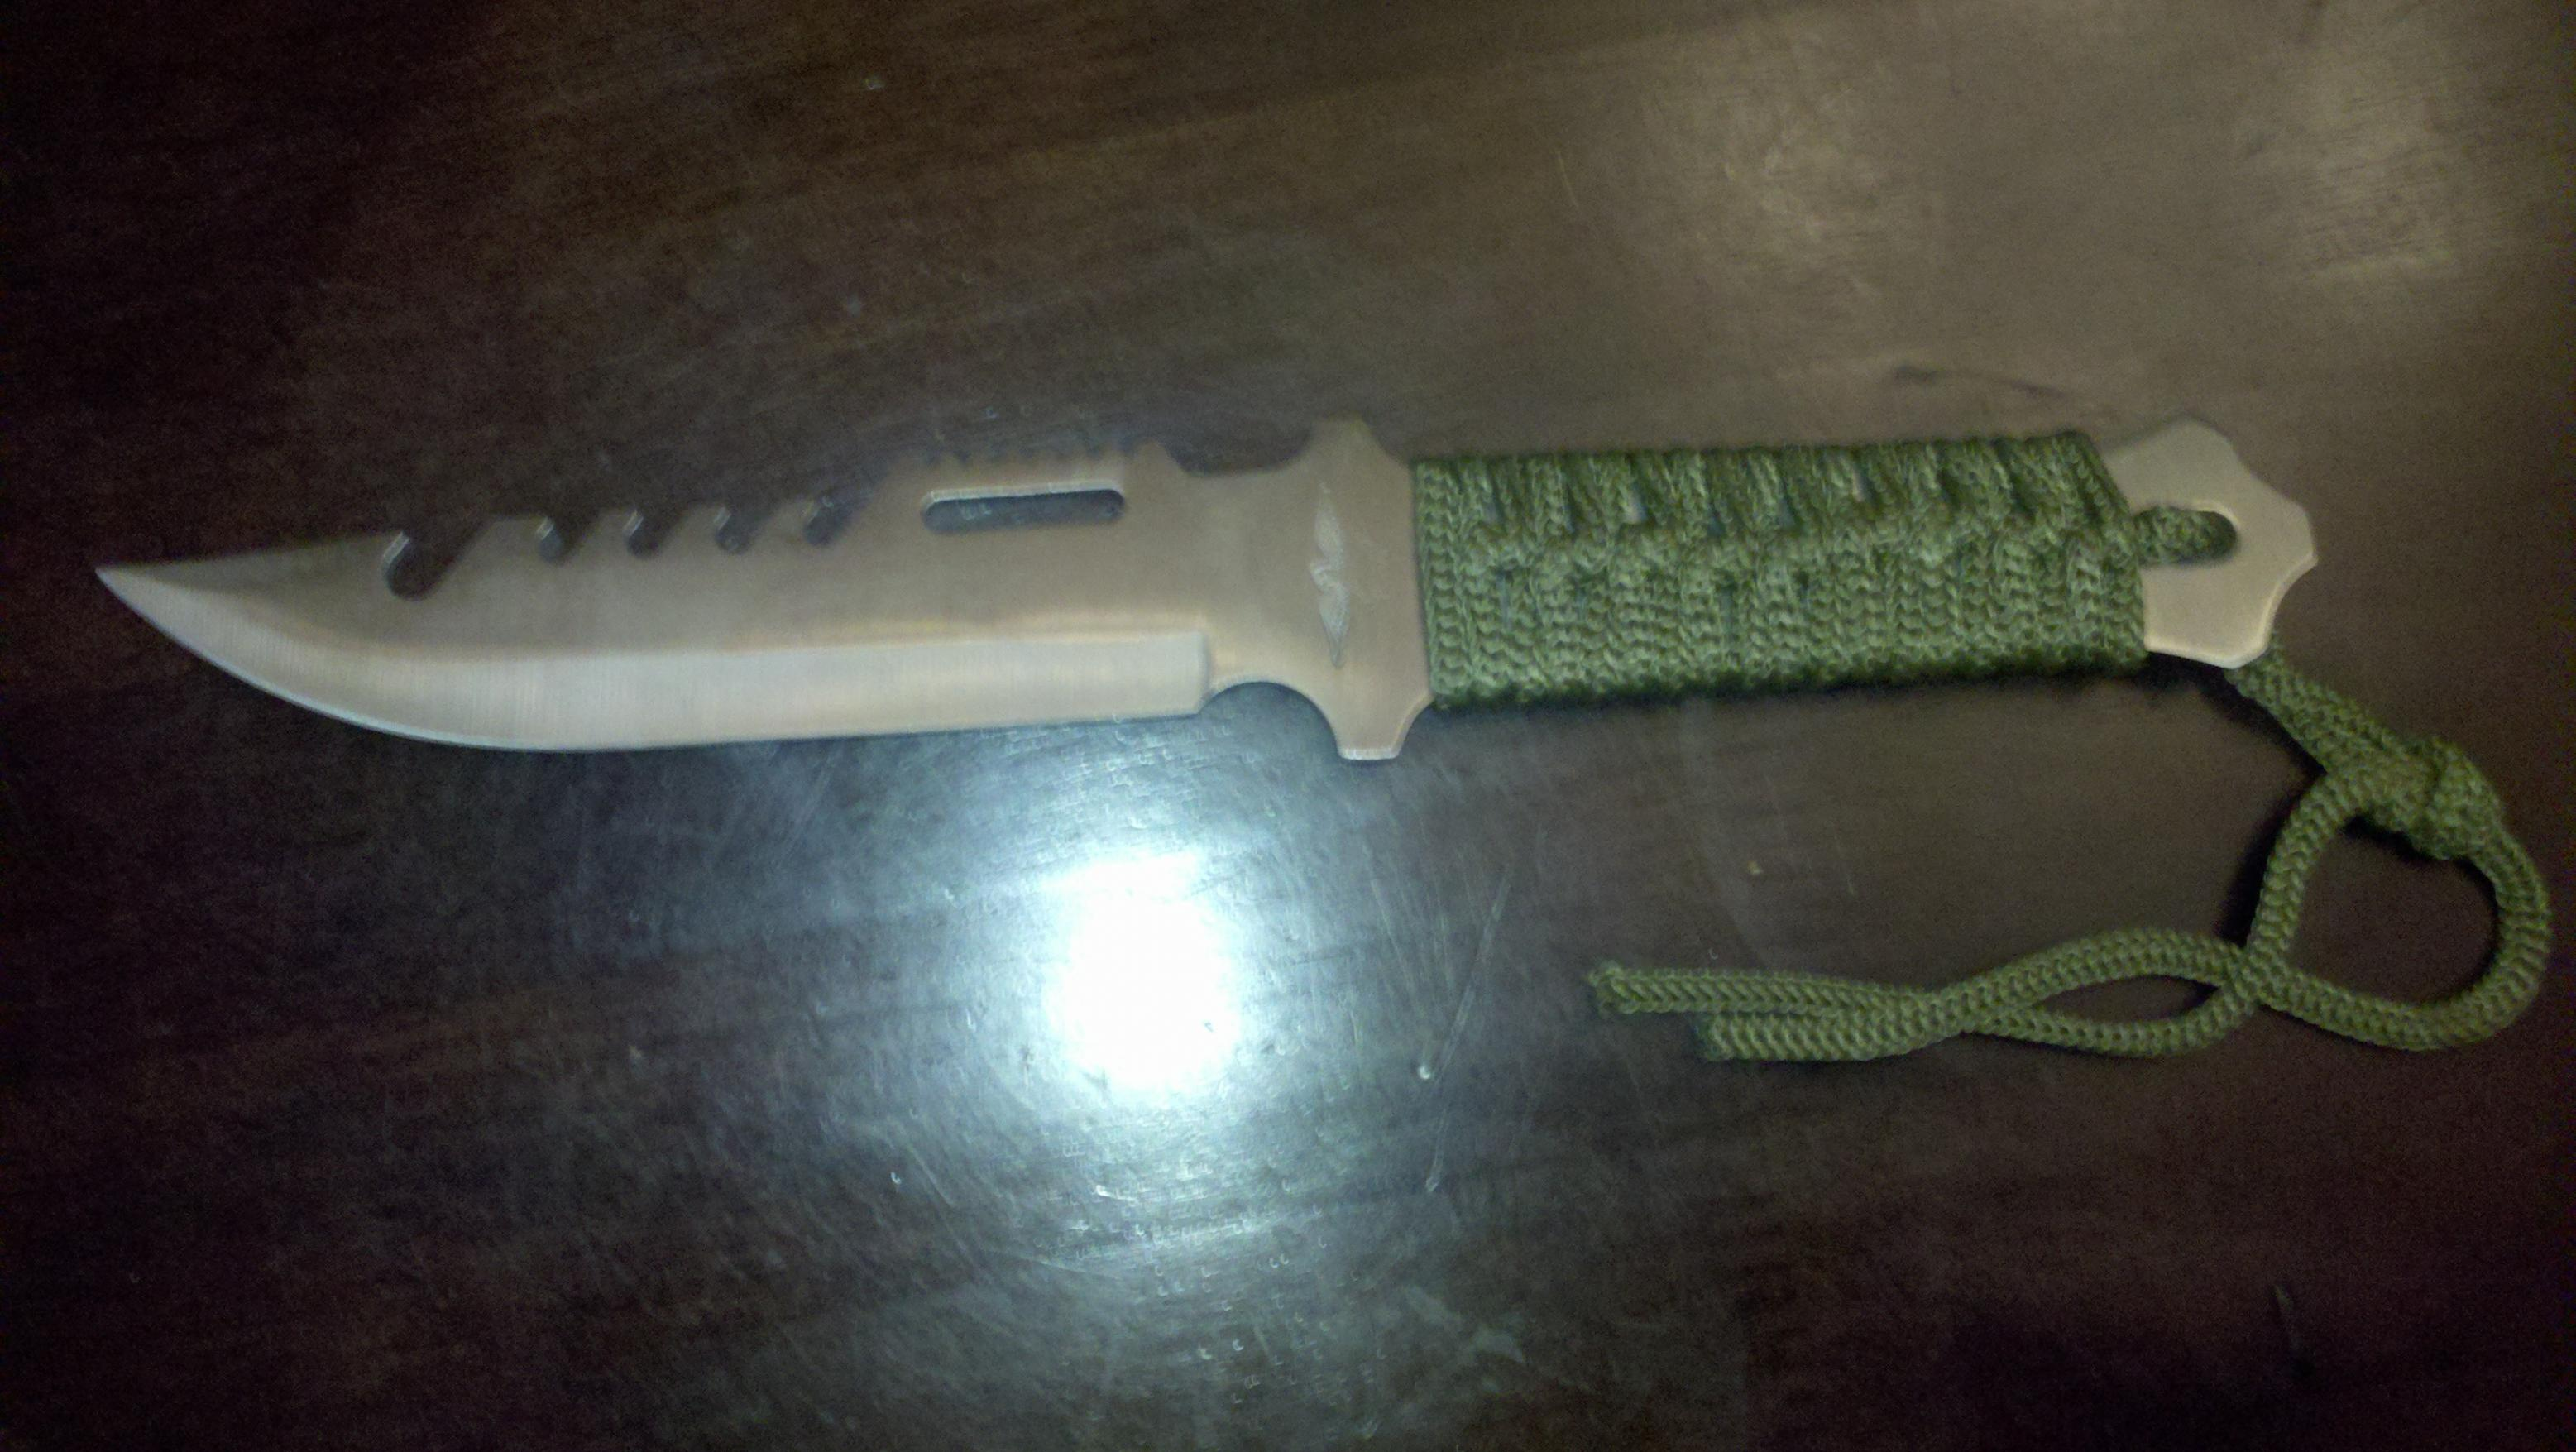 Help with this knife-2012-01-15_16-04-48_687.jpg